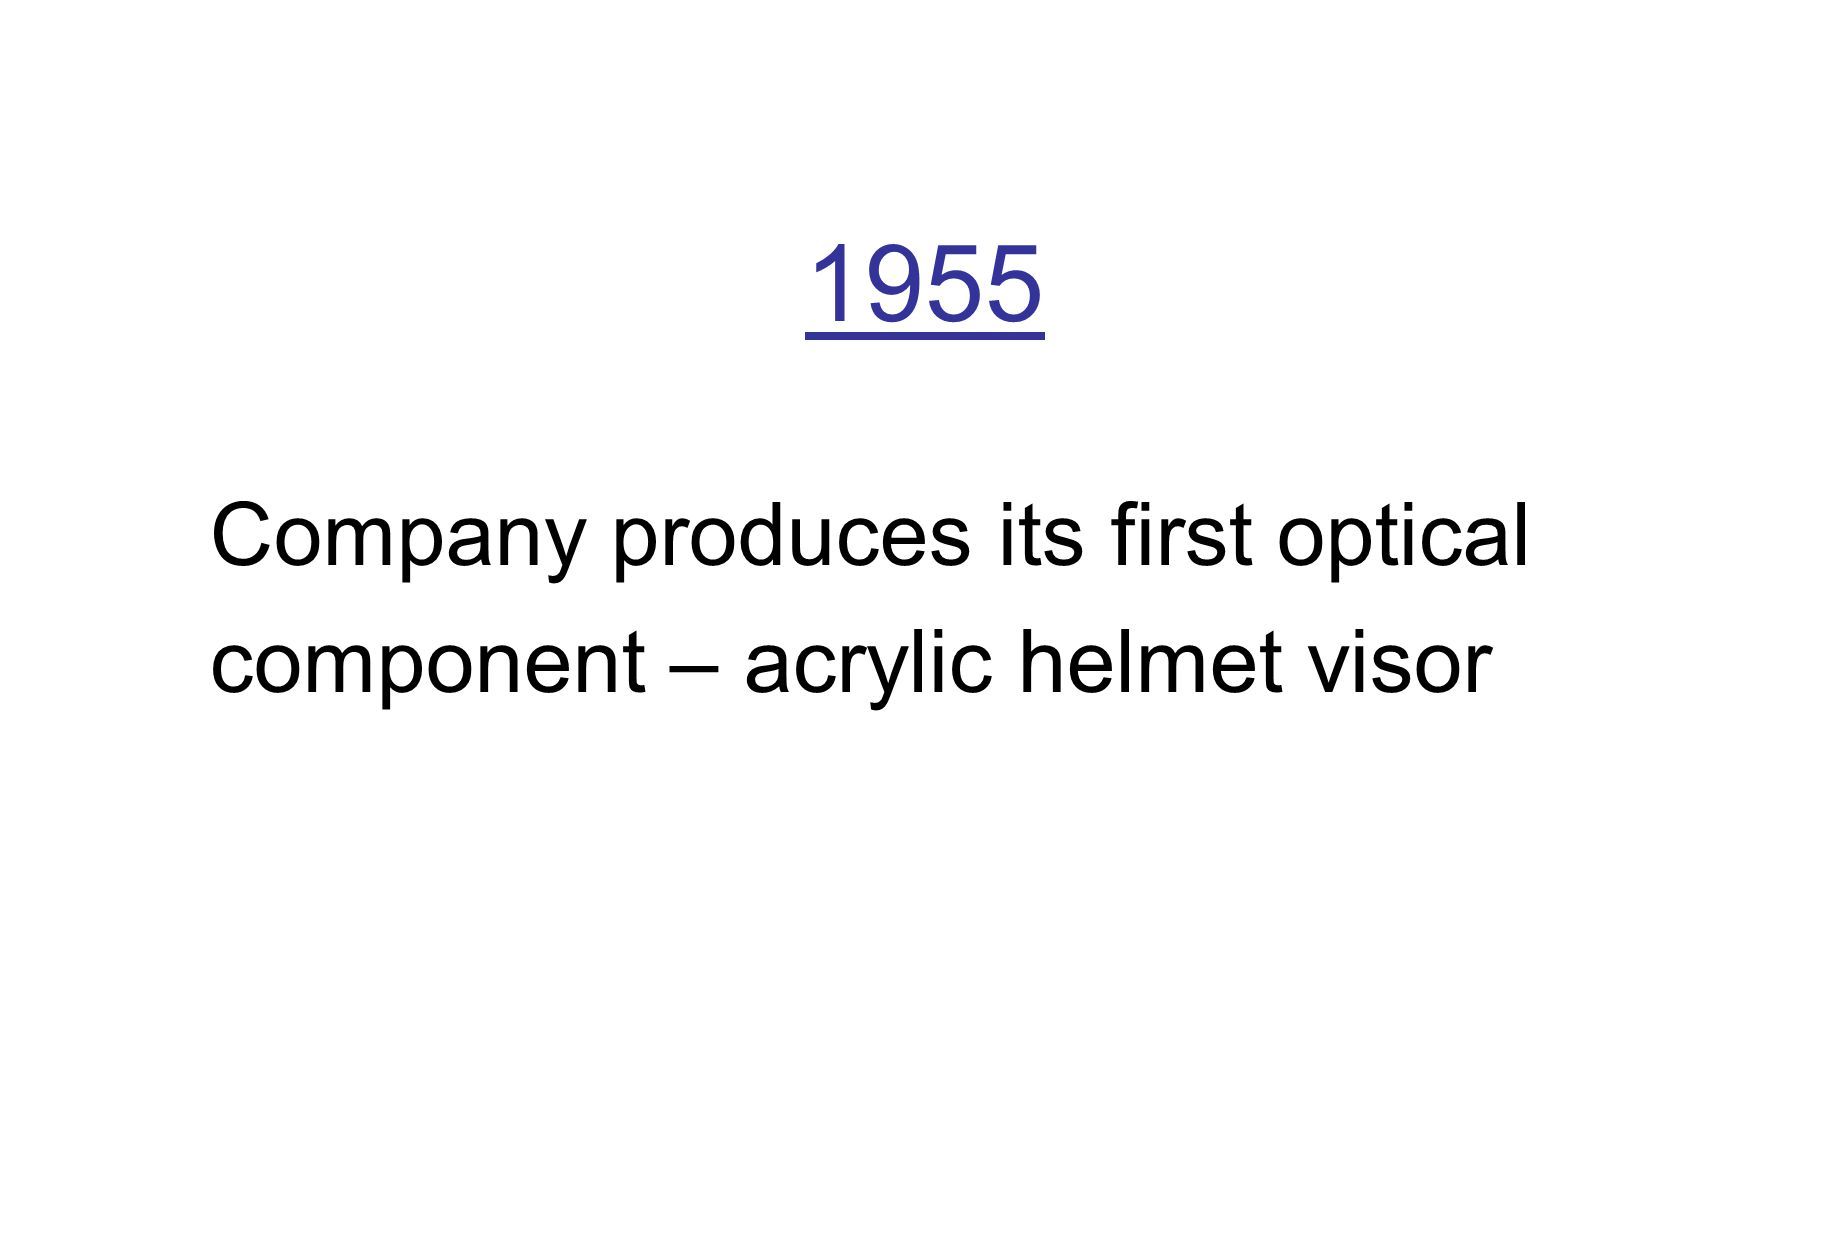 1955 Company produces its first optical component – acrylic helmet visor